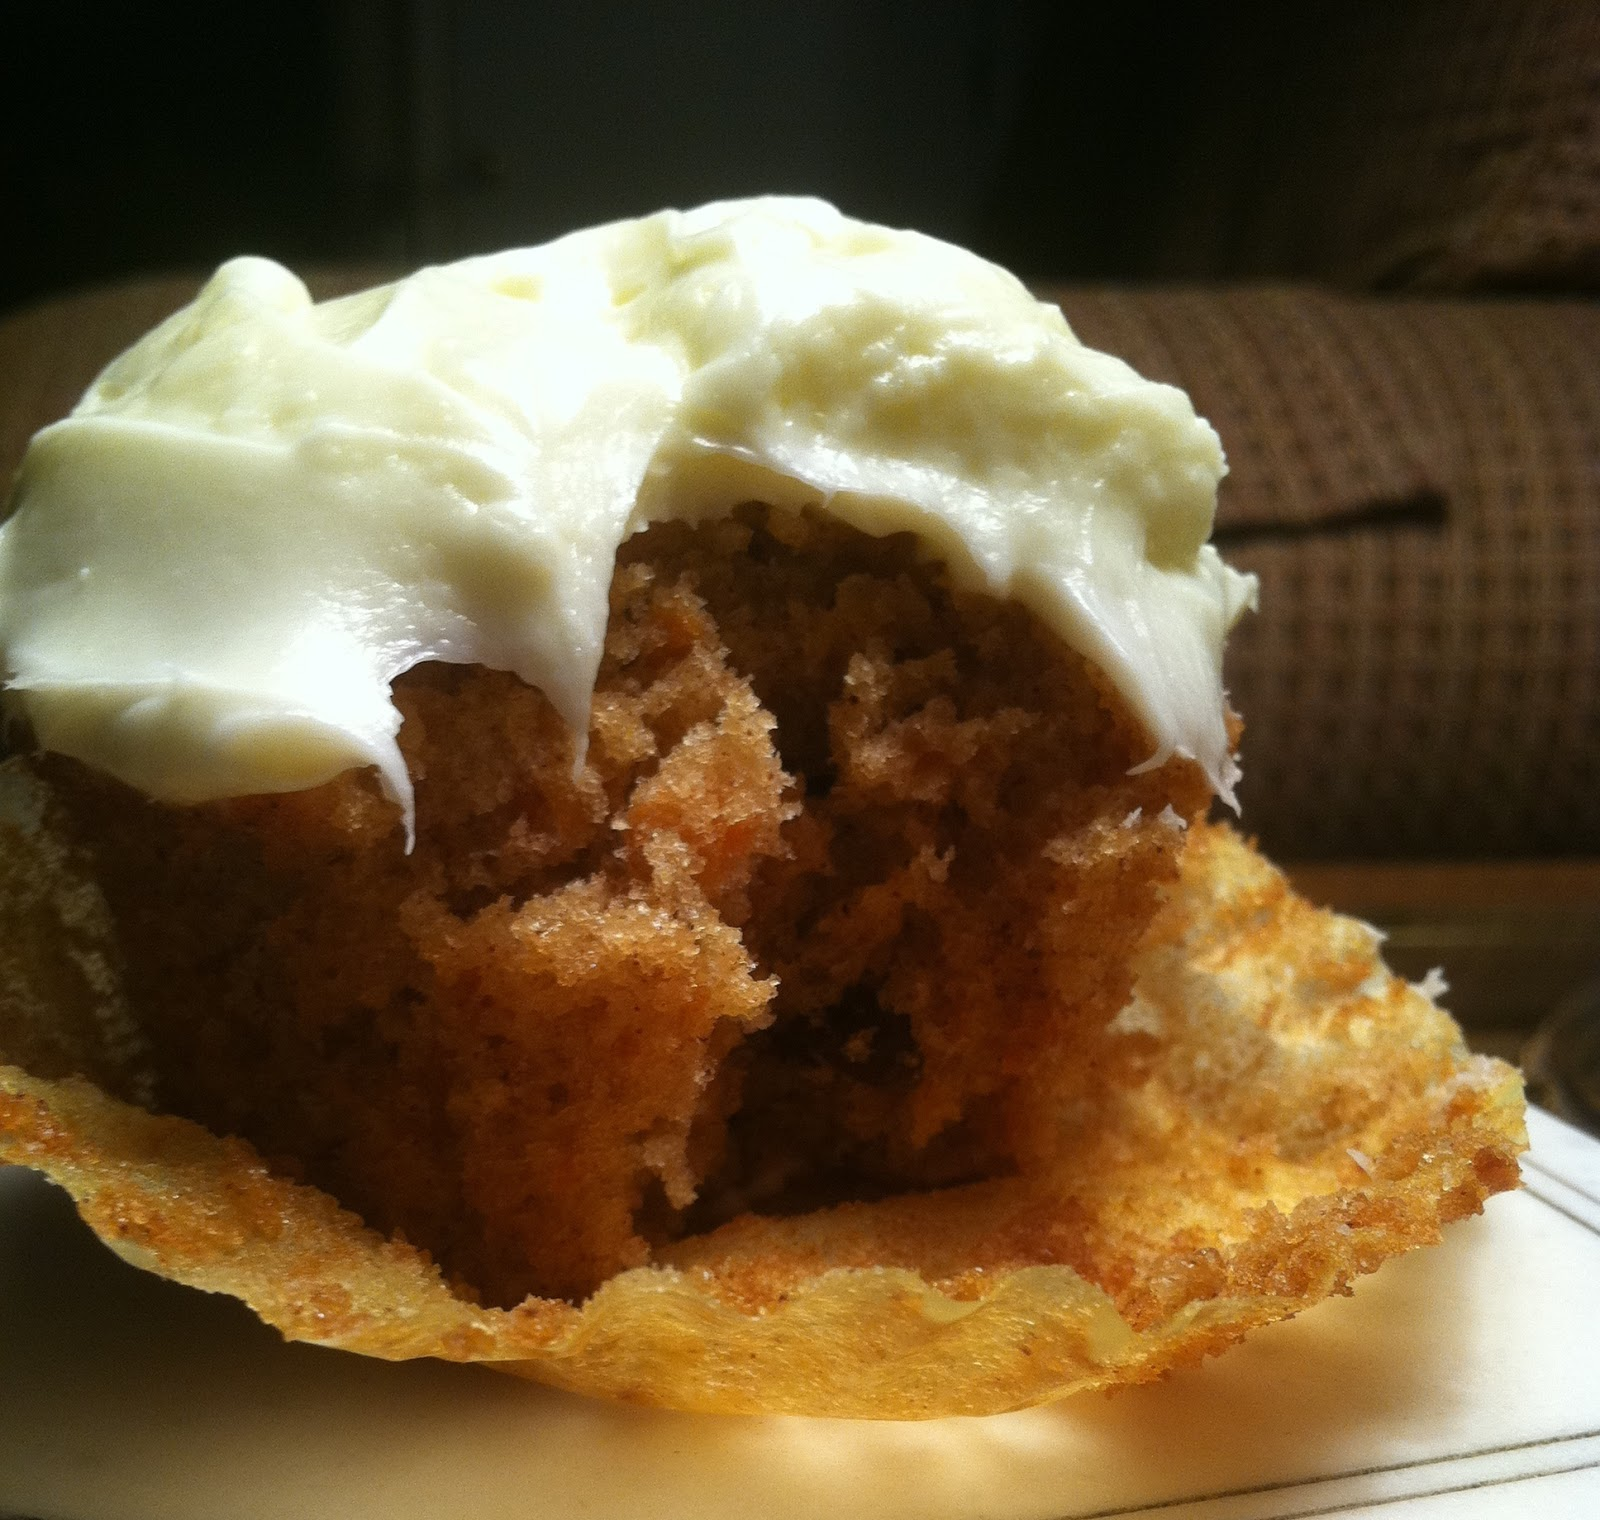 ... : Heavenly Carrot Cupcakes with White Chocolate Cream Cheese Frosting